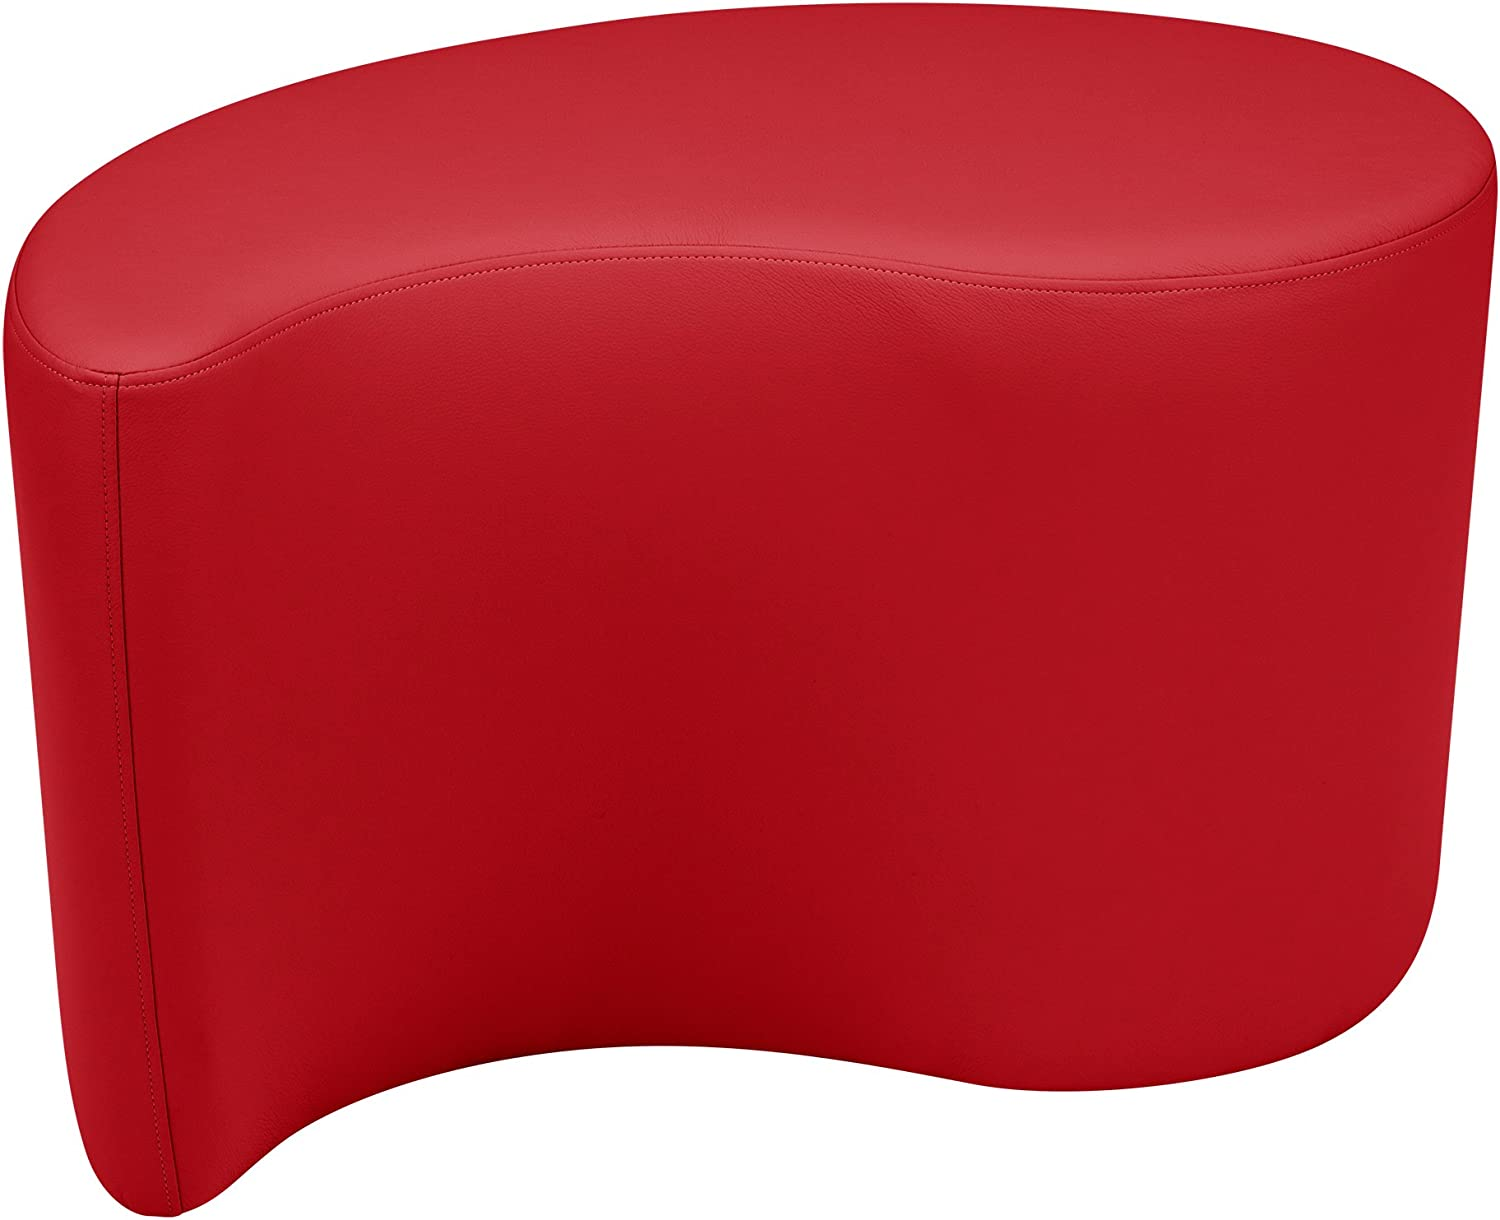 School Outfitters Shapes Series II Vinyl Soft Soft Soft Seating Stool, Teardrop, 18  H, rot, LNT-1002RD-A B06Y1R23JS | Neues Design  331182